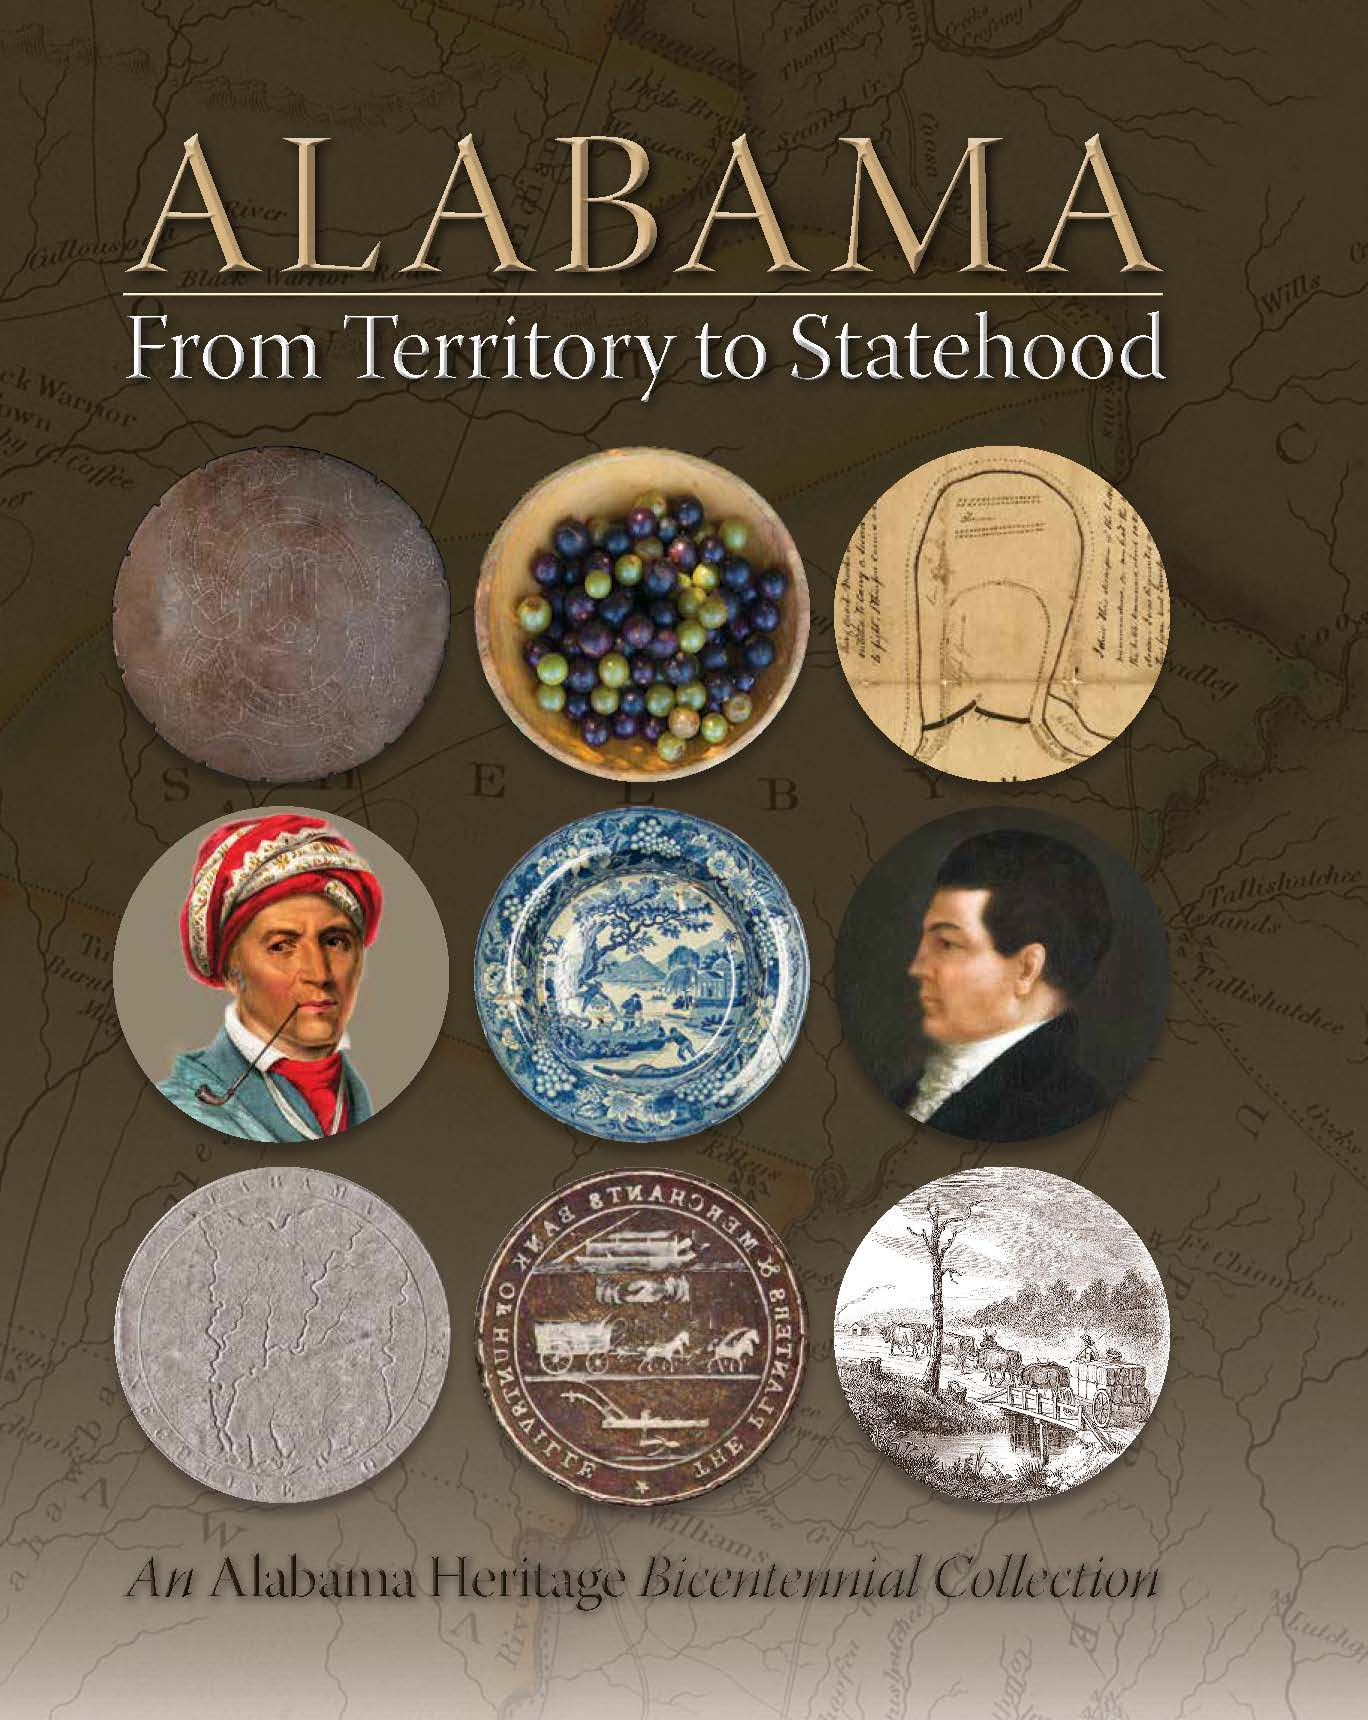 Alabama, from Territory to Statehood